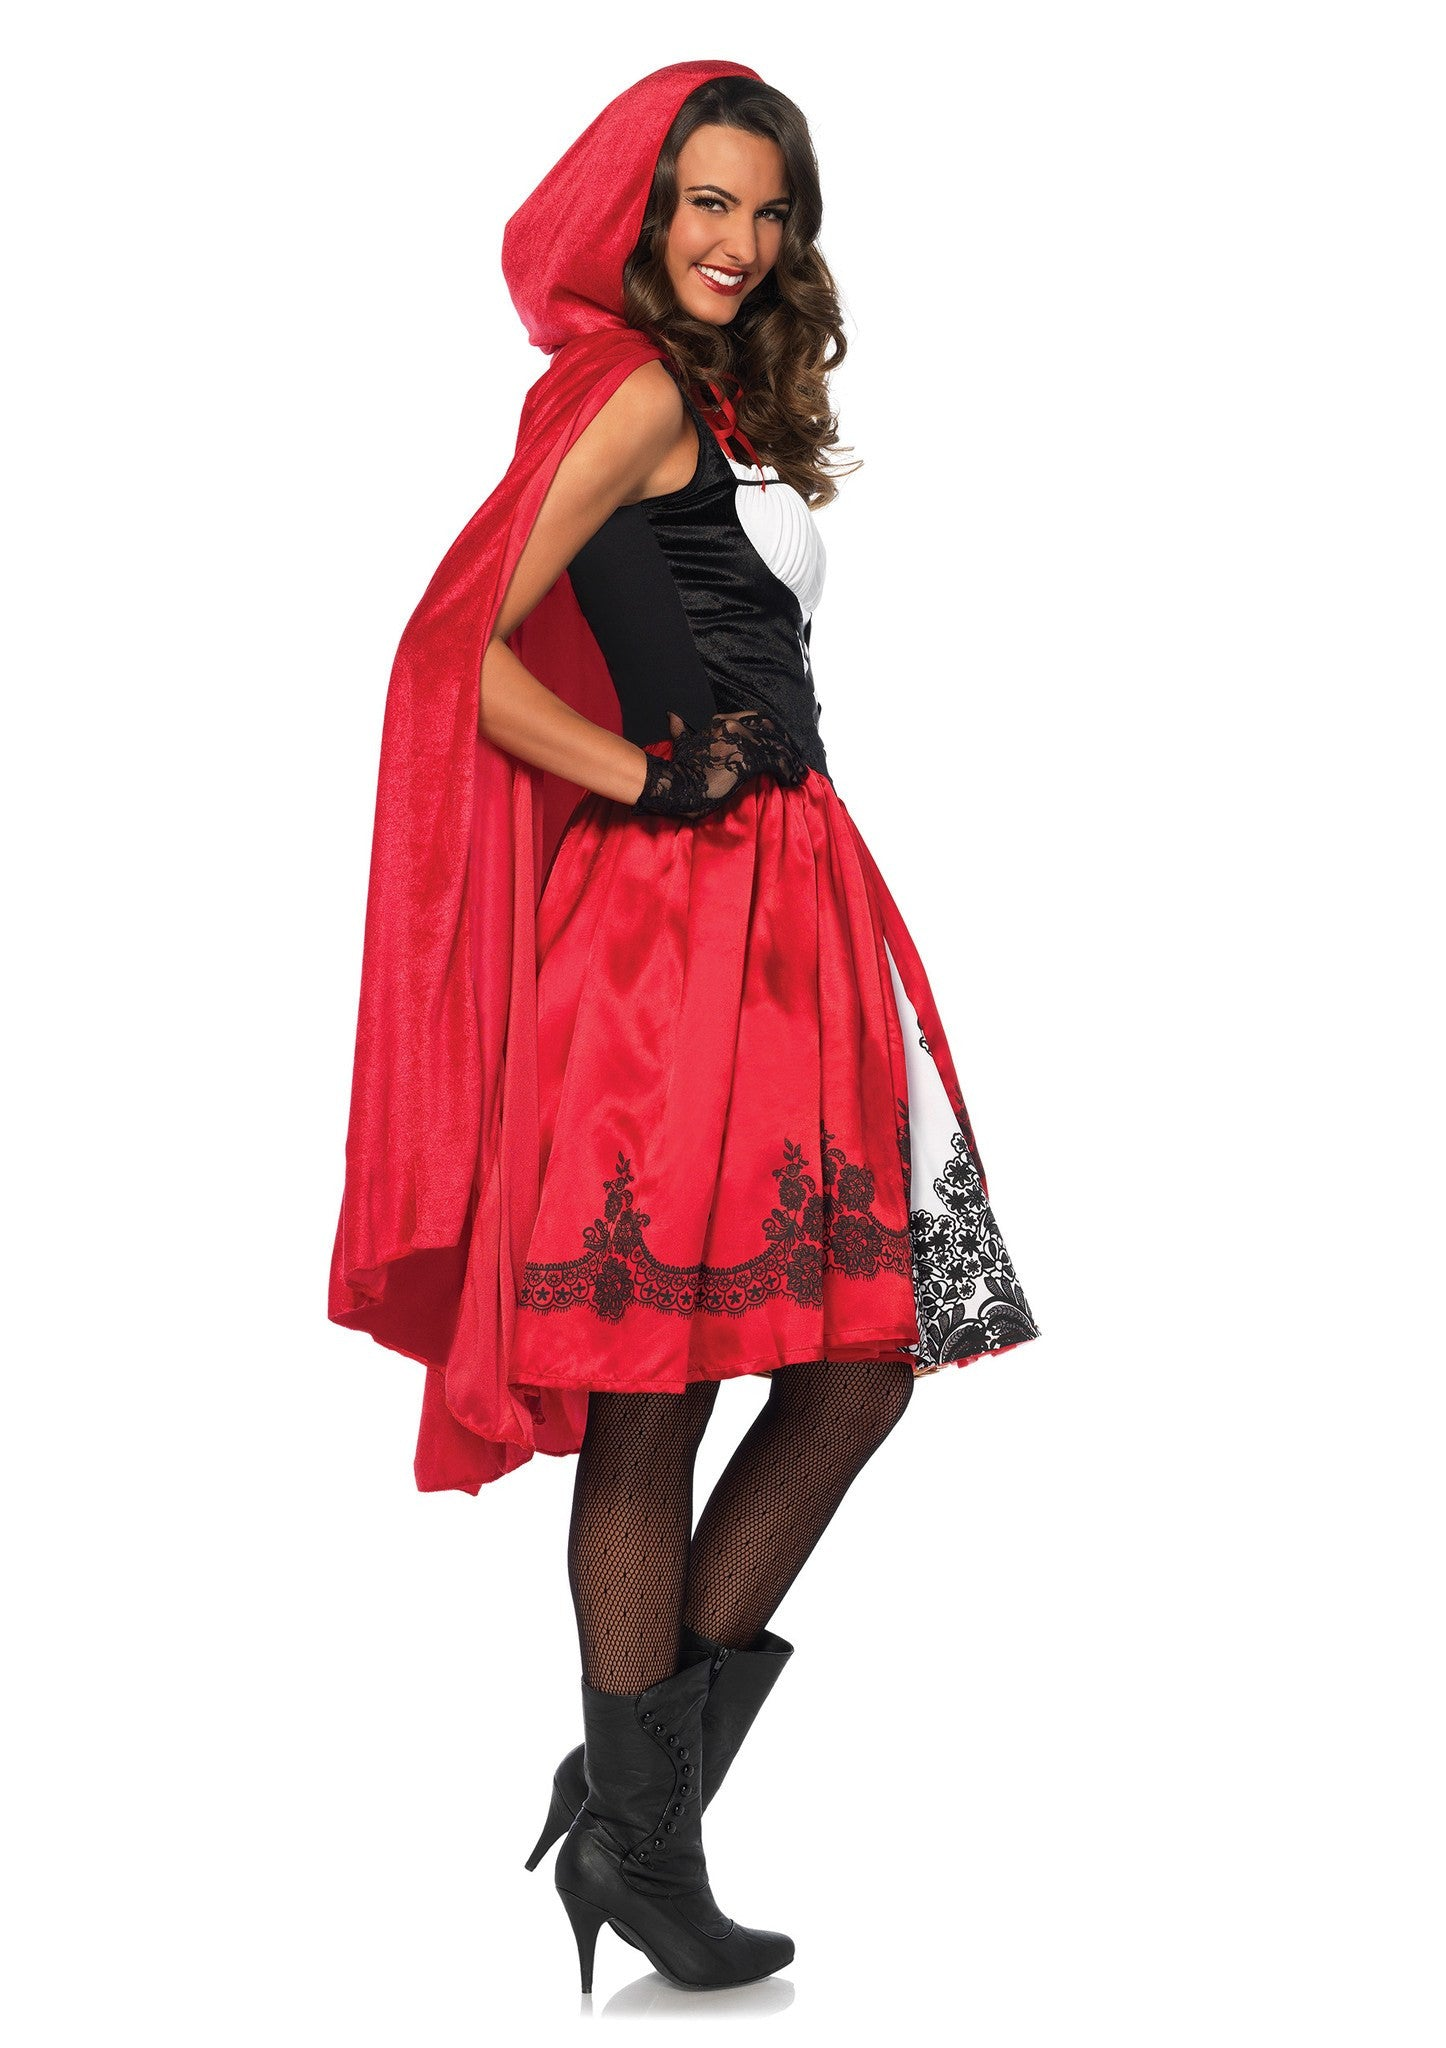 Classic Red Riding Hood Costume - Little Red Riding Hood - Stagecoach 894c2b212